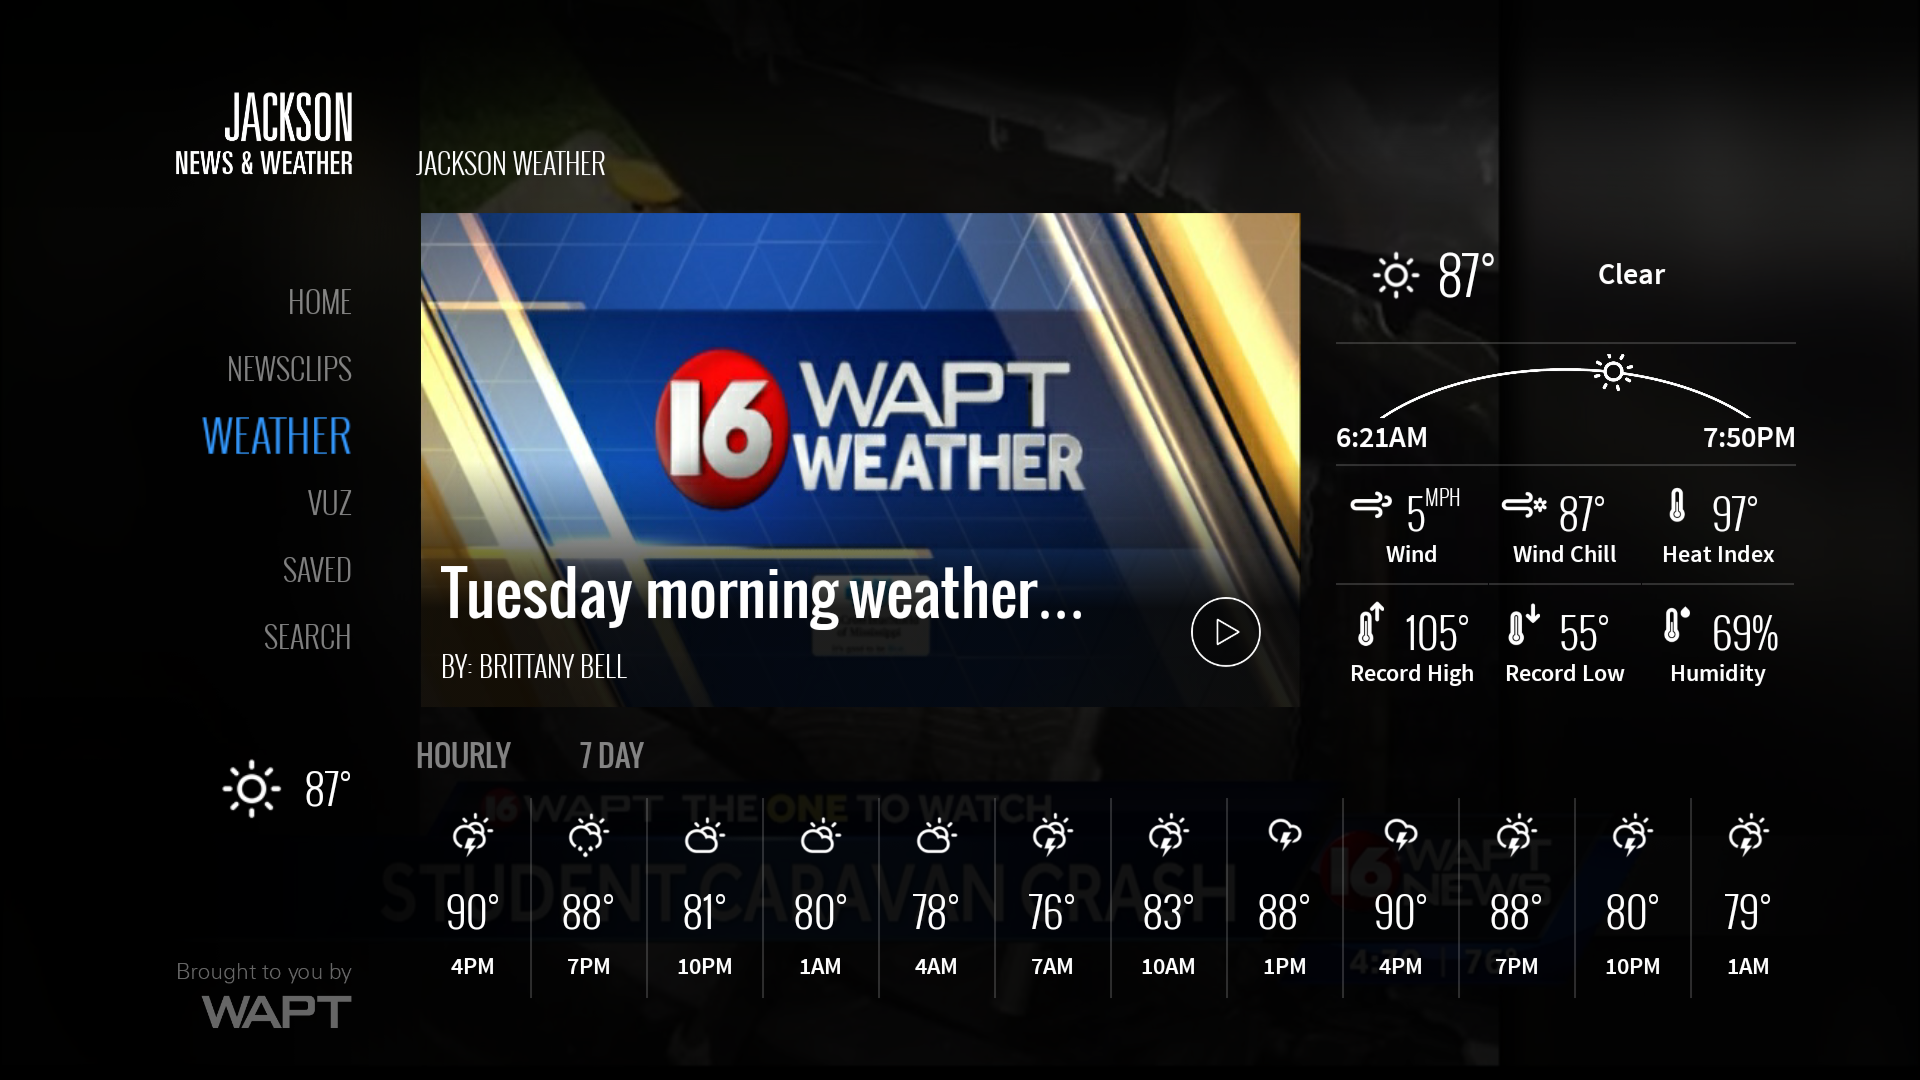 16 WAPT Jackson News, Weather